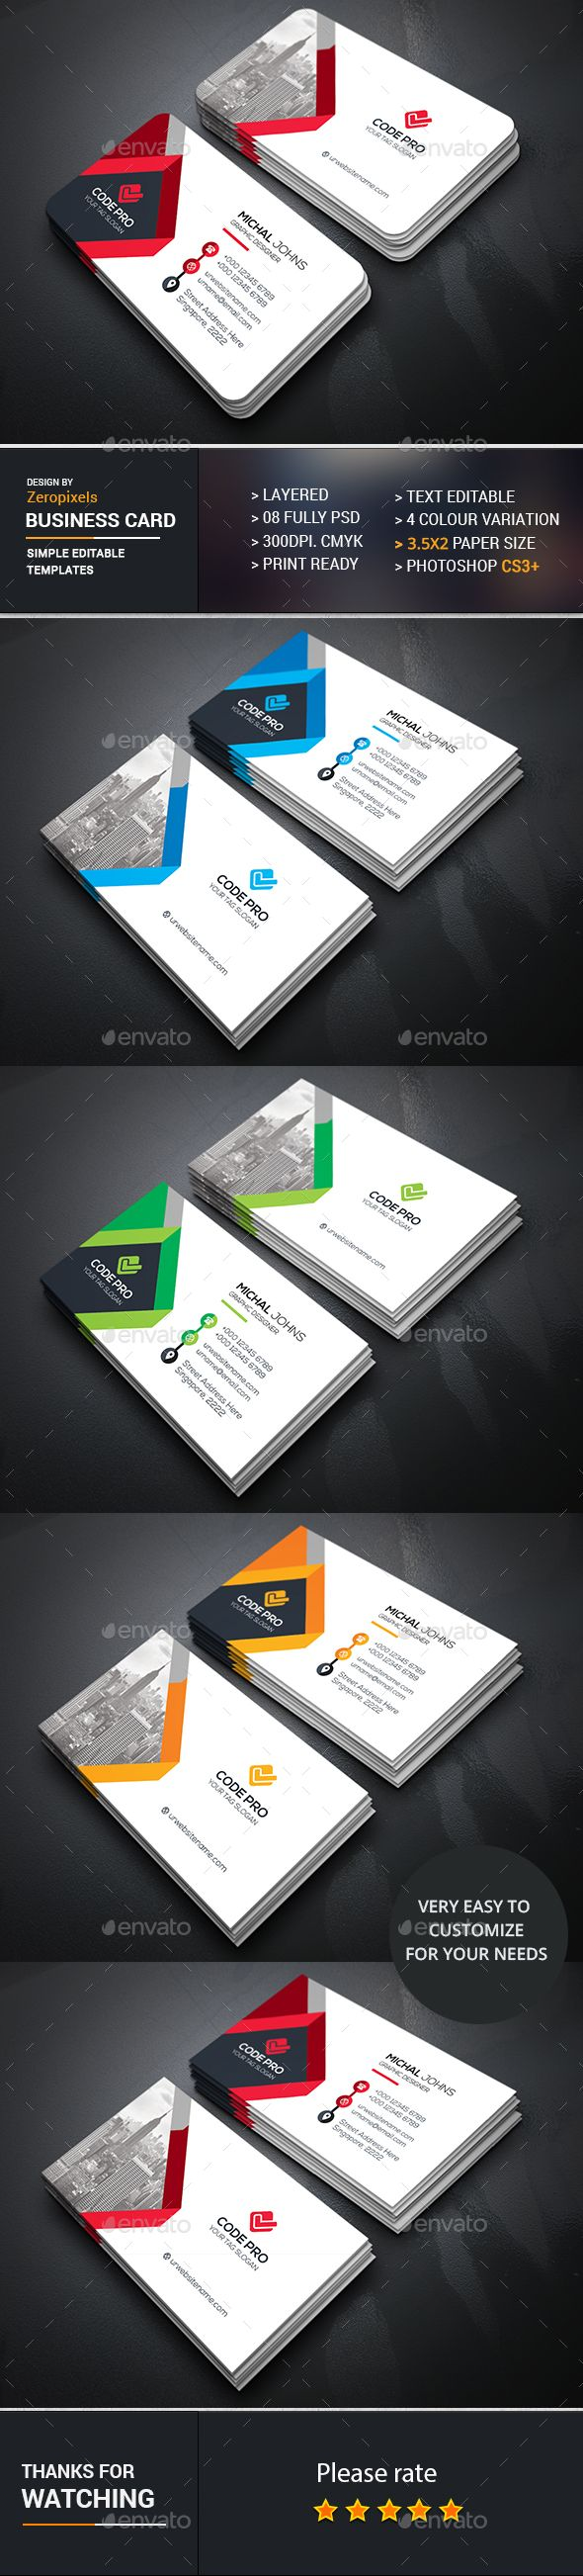 Business Card Template PSD Business Cards Pinterest - Buy business card template